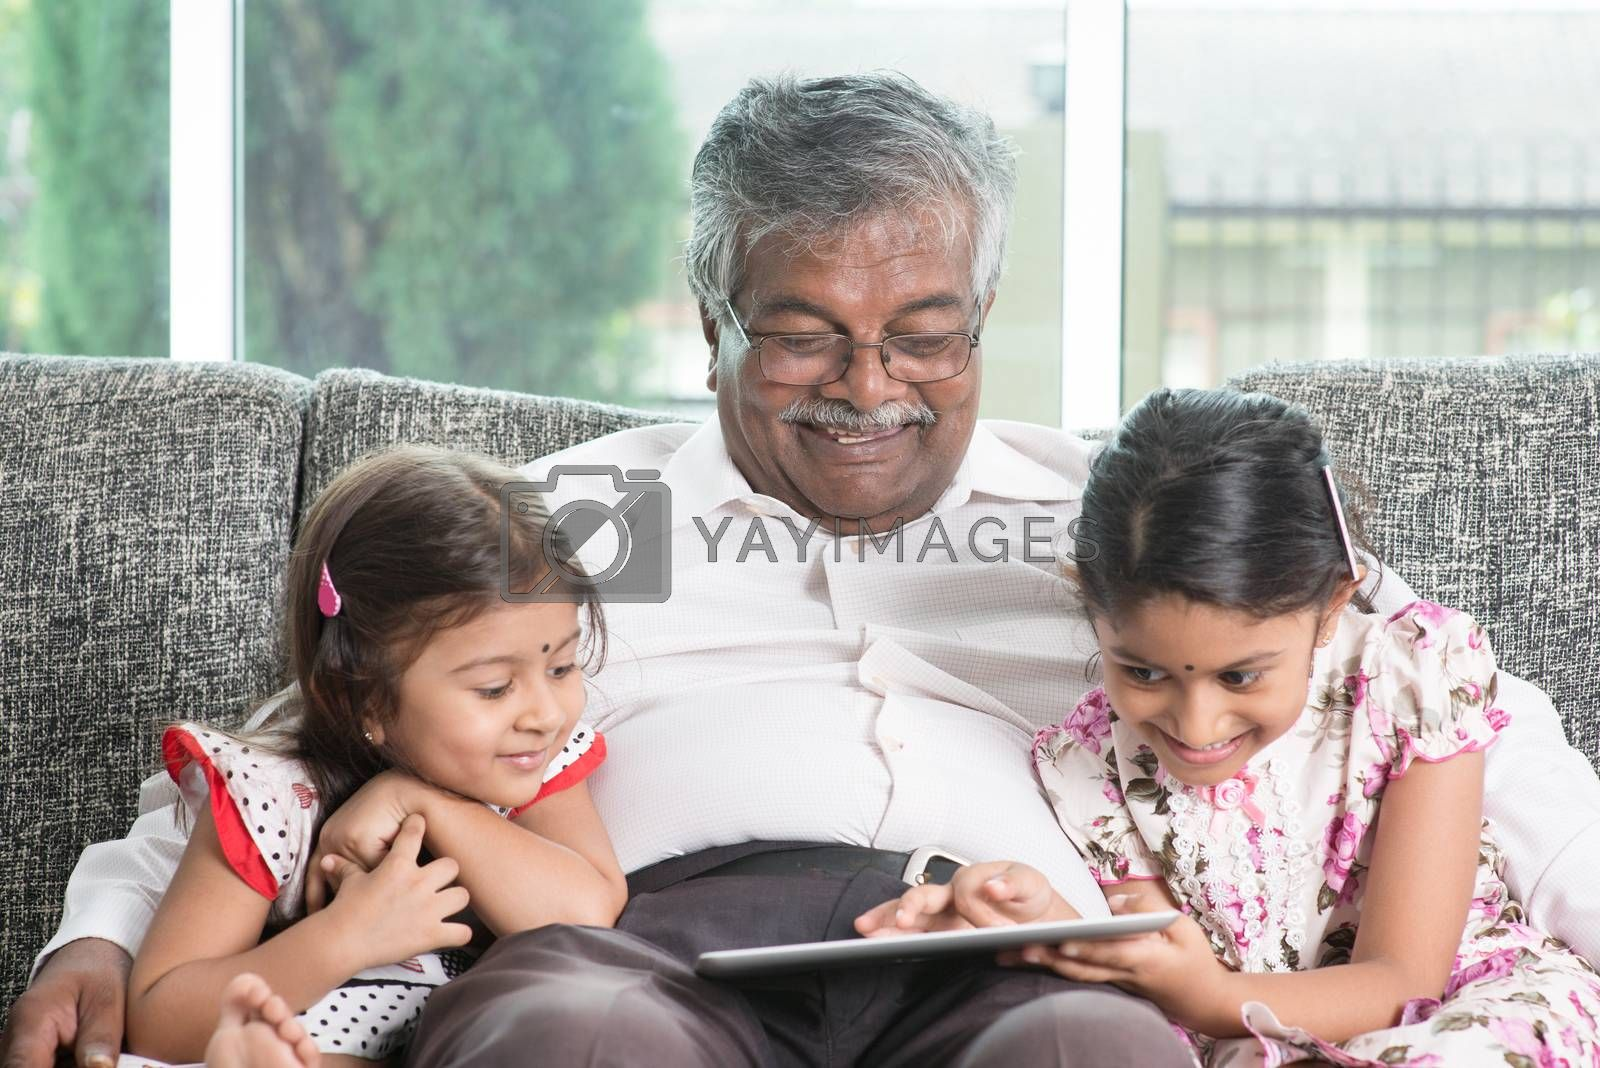 Modern technology concept. Grandparent and grandchildren using touch screen tablet computer. Portrait Indian family at home. Asian people living lifestyle.